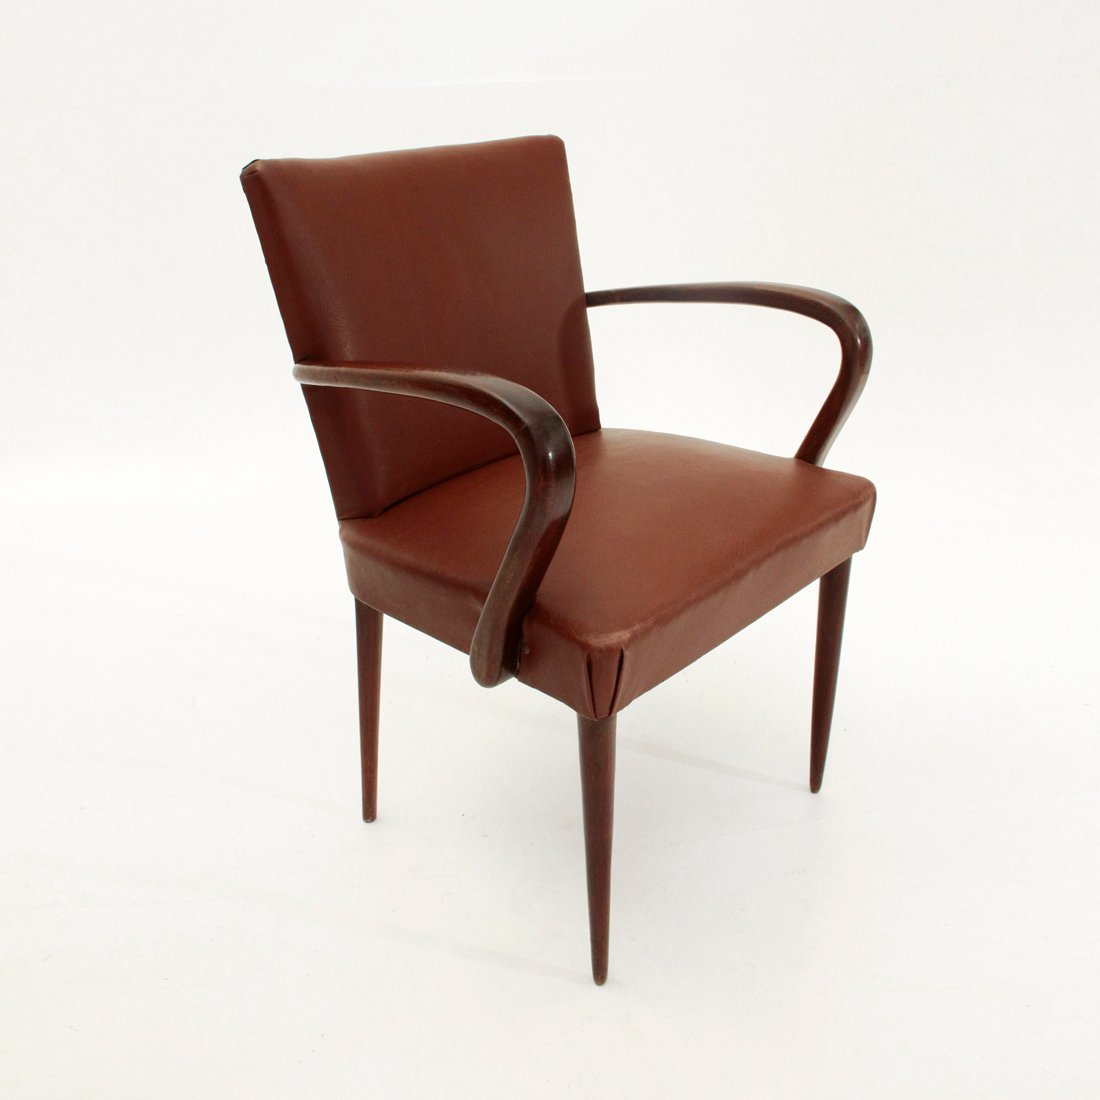 Italian Art Deco Armchair, 1930s for sale at Pamono